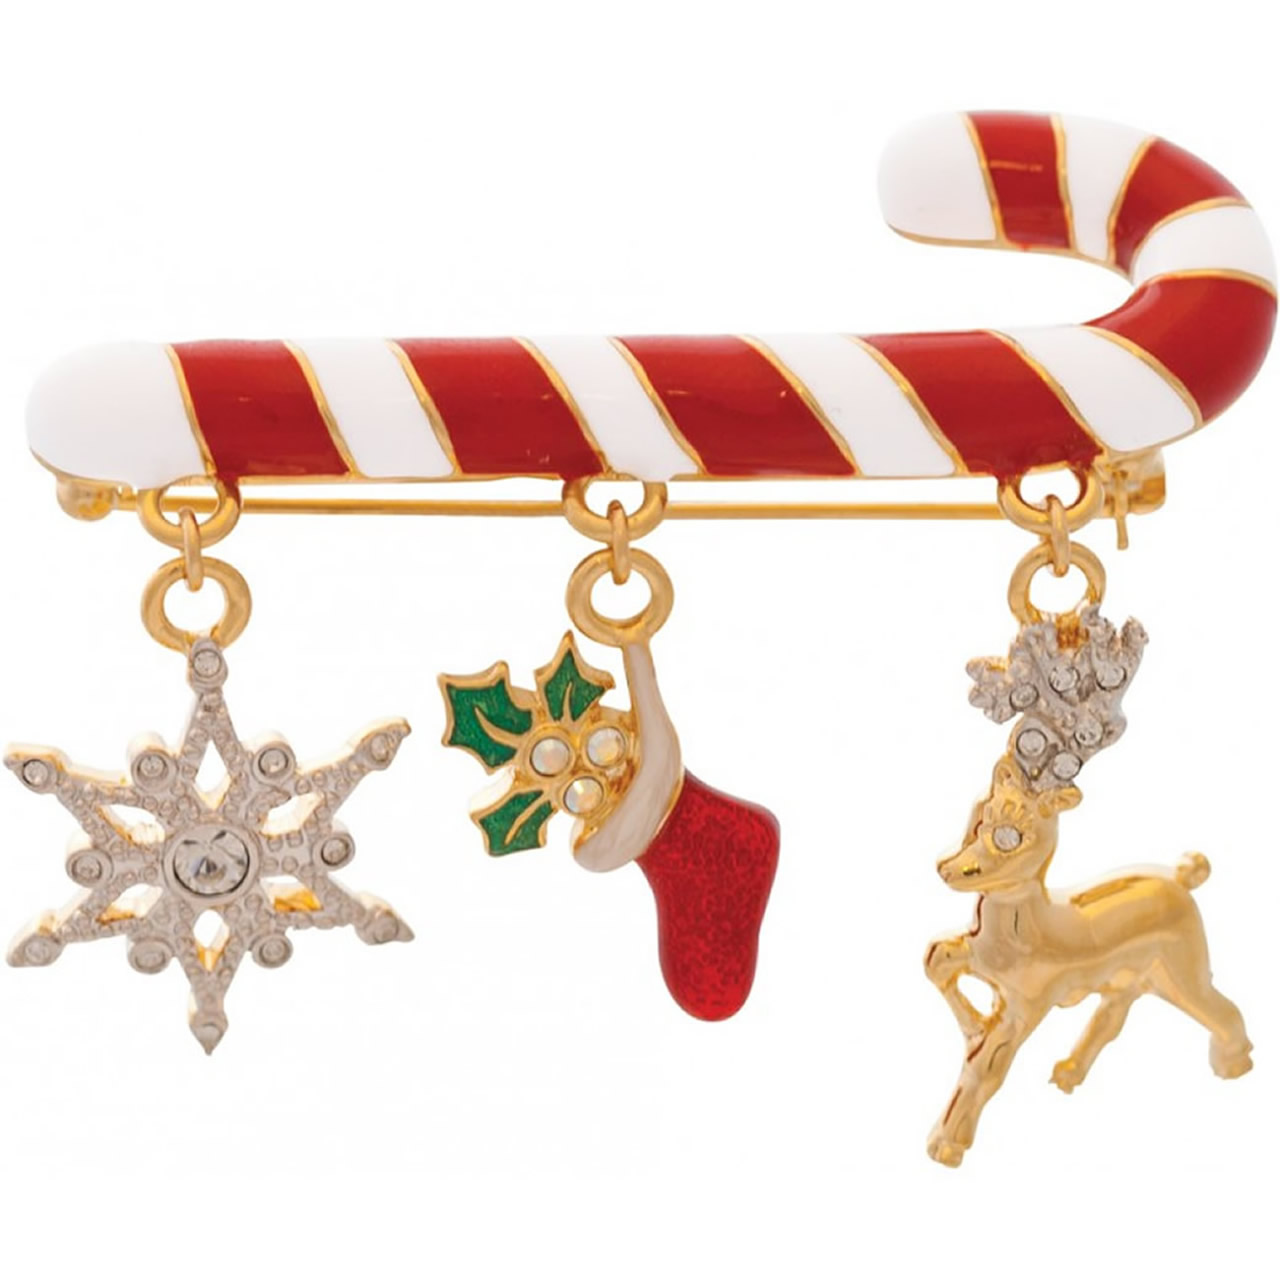 Gold Plated Christmas Candy Cane Brooch With Themed Charms